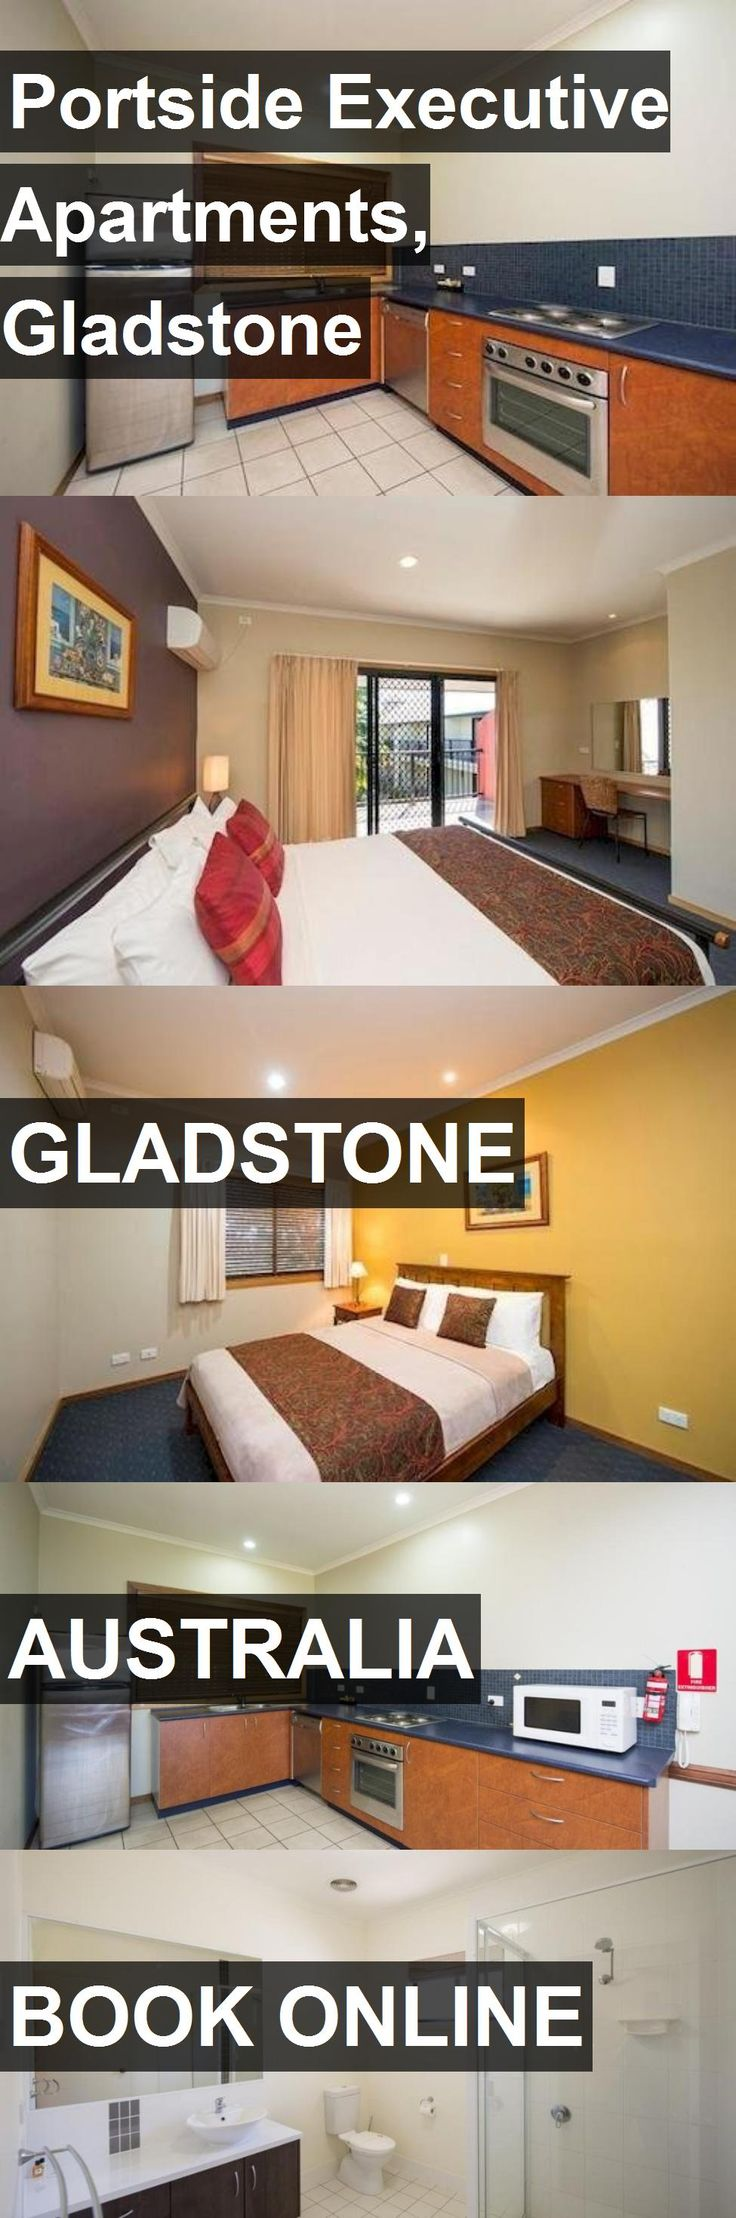 Portside Executive Apartments, Gladstone in Gladstone, Australia. For more information, photos, reviews and best prices please follow the link. #Australia #Gladstone #travel #vacation #apartment